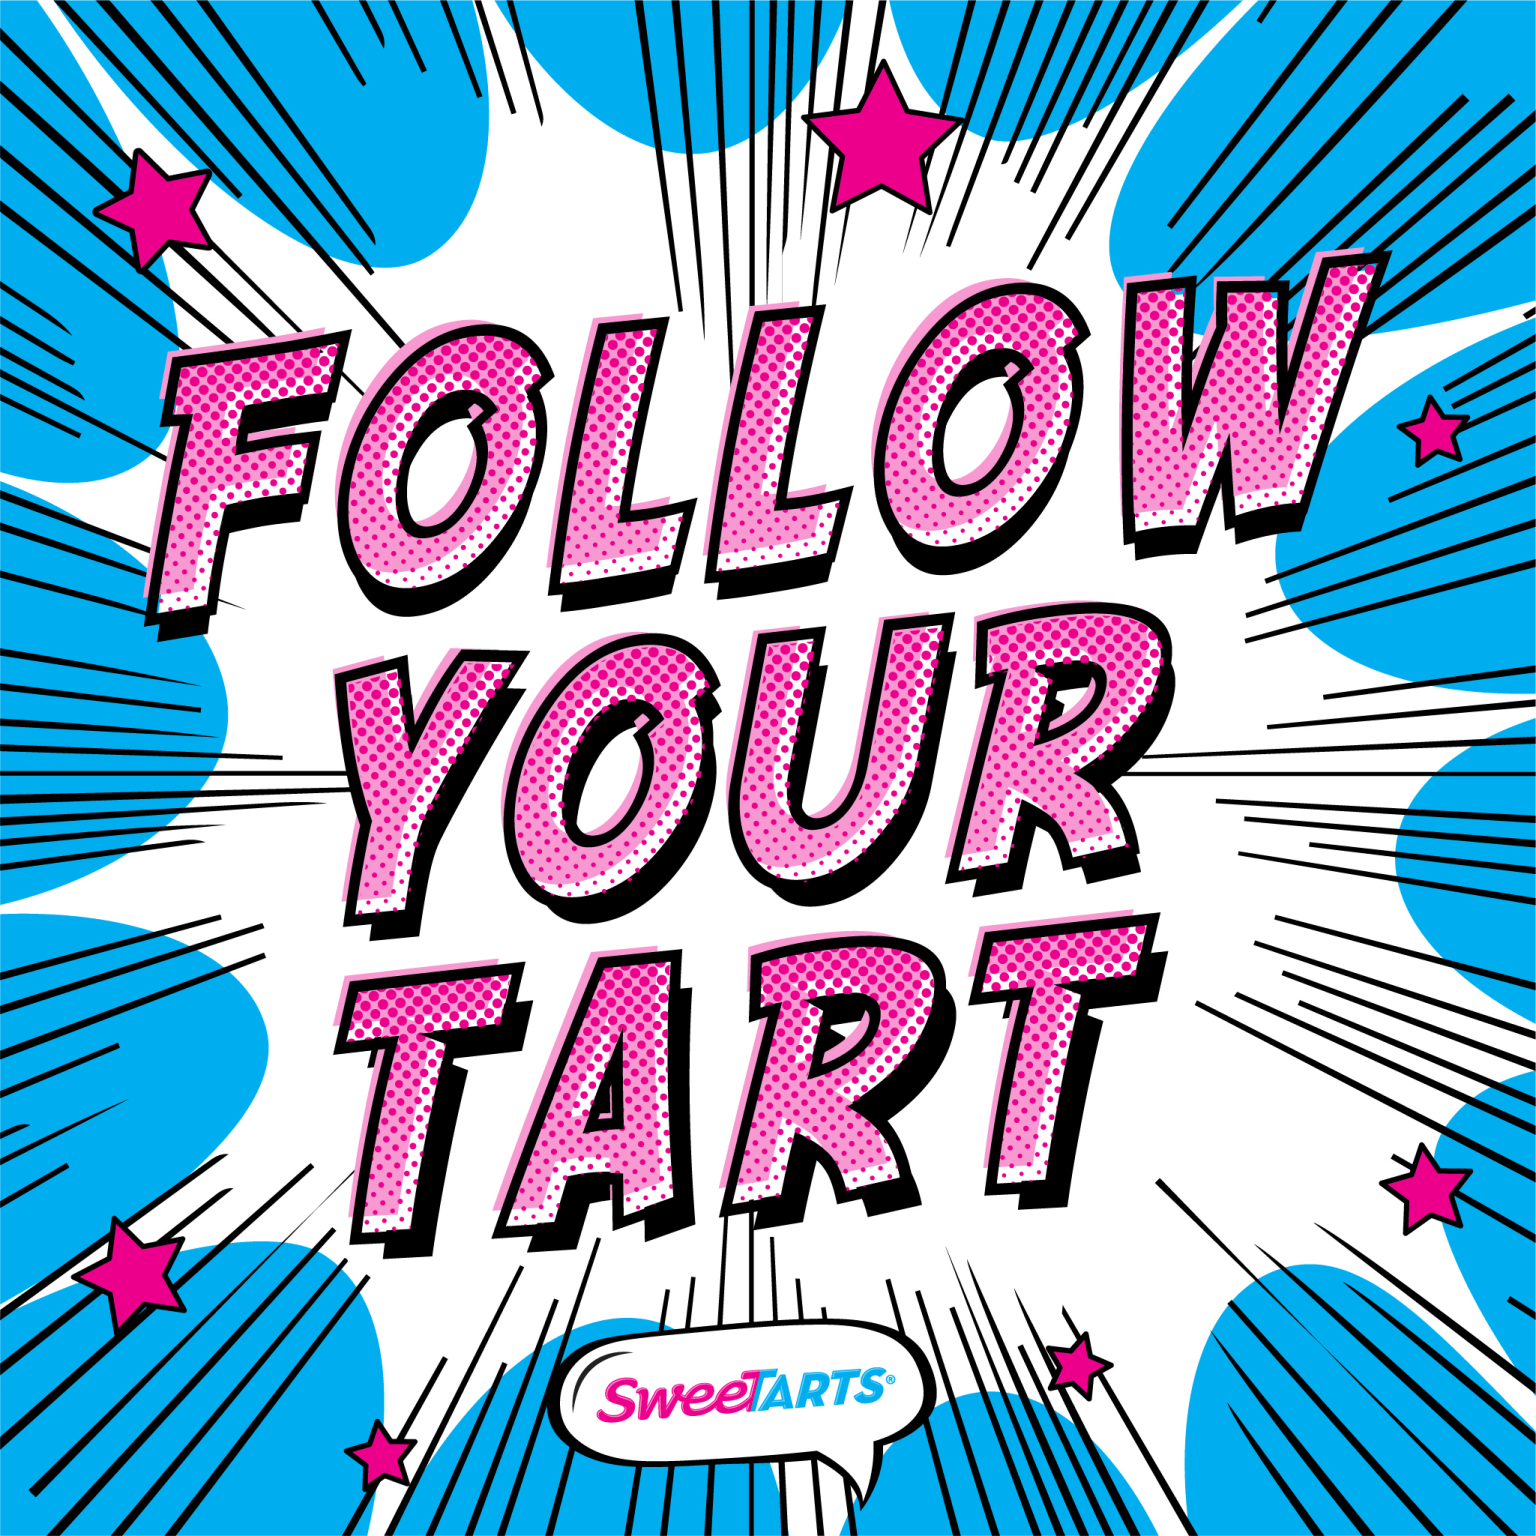 SweeTARTS: Follow Your Tart